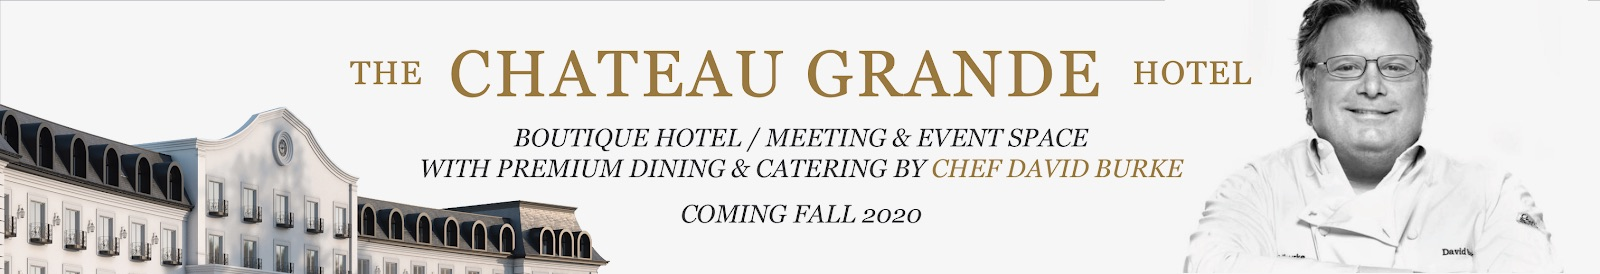 Coming Soon The Chateau Grande Hotel